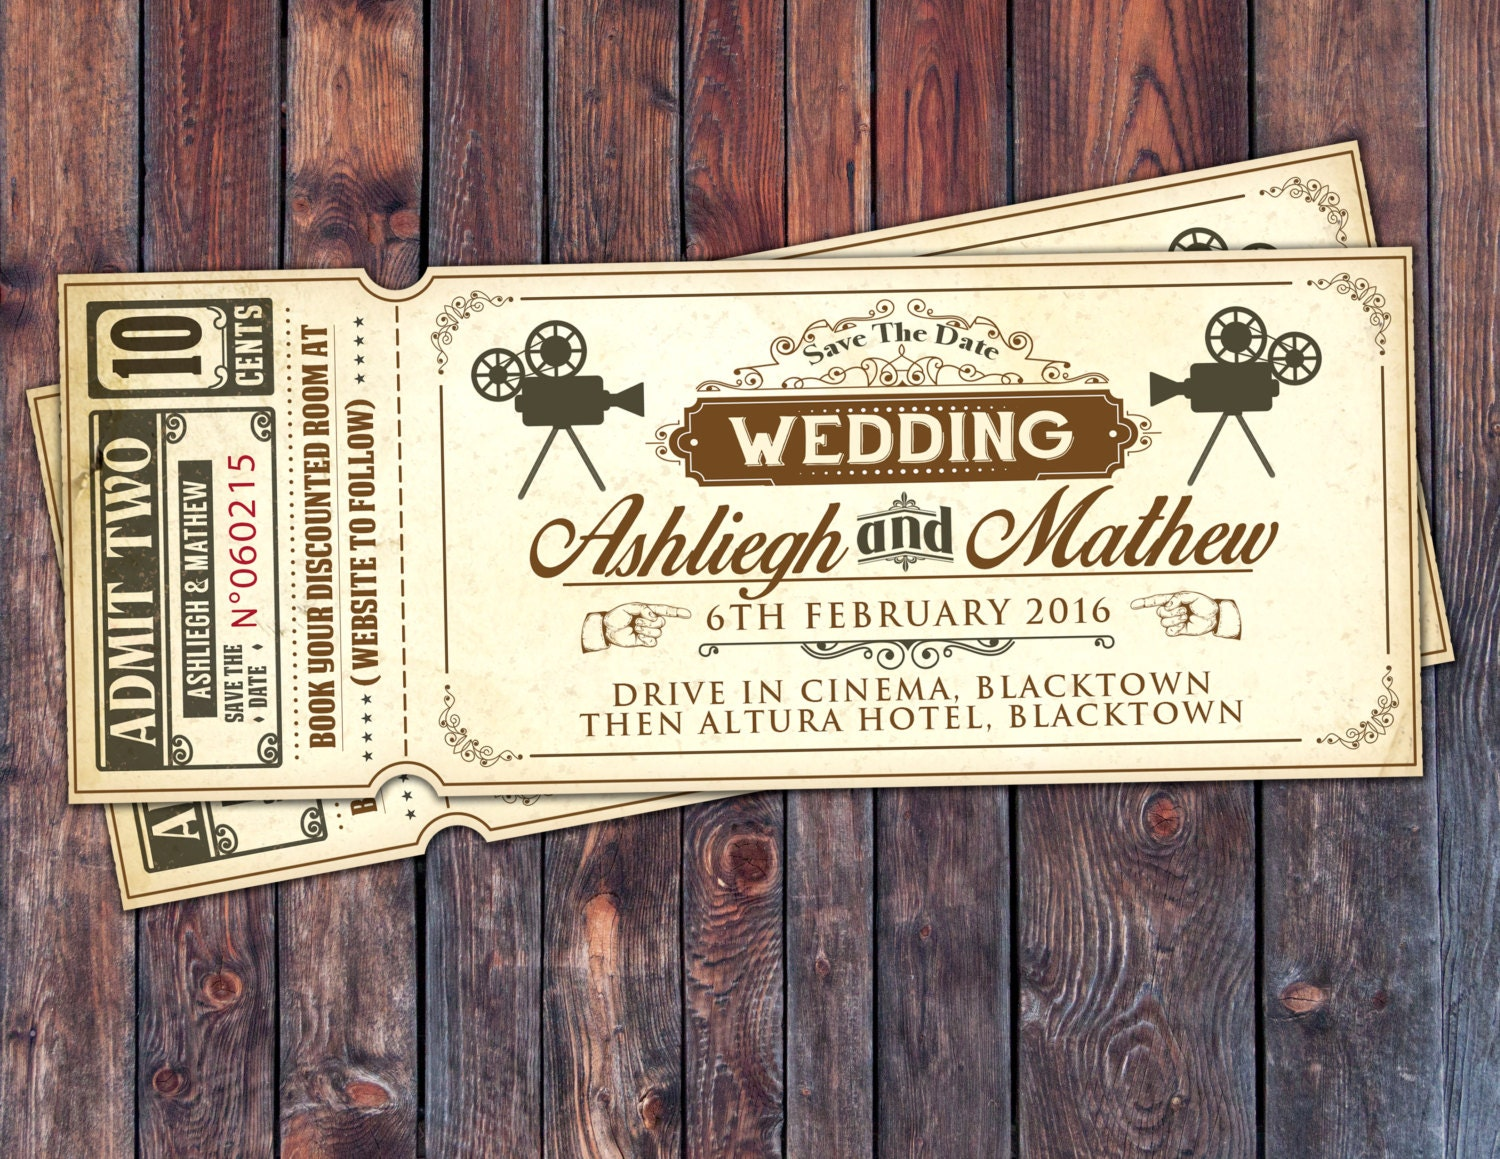 Hollywood Party Invitations was amazing invitations sample